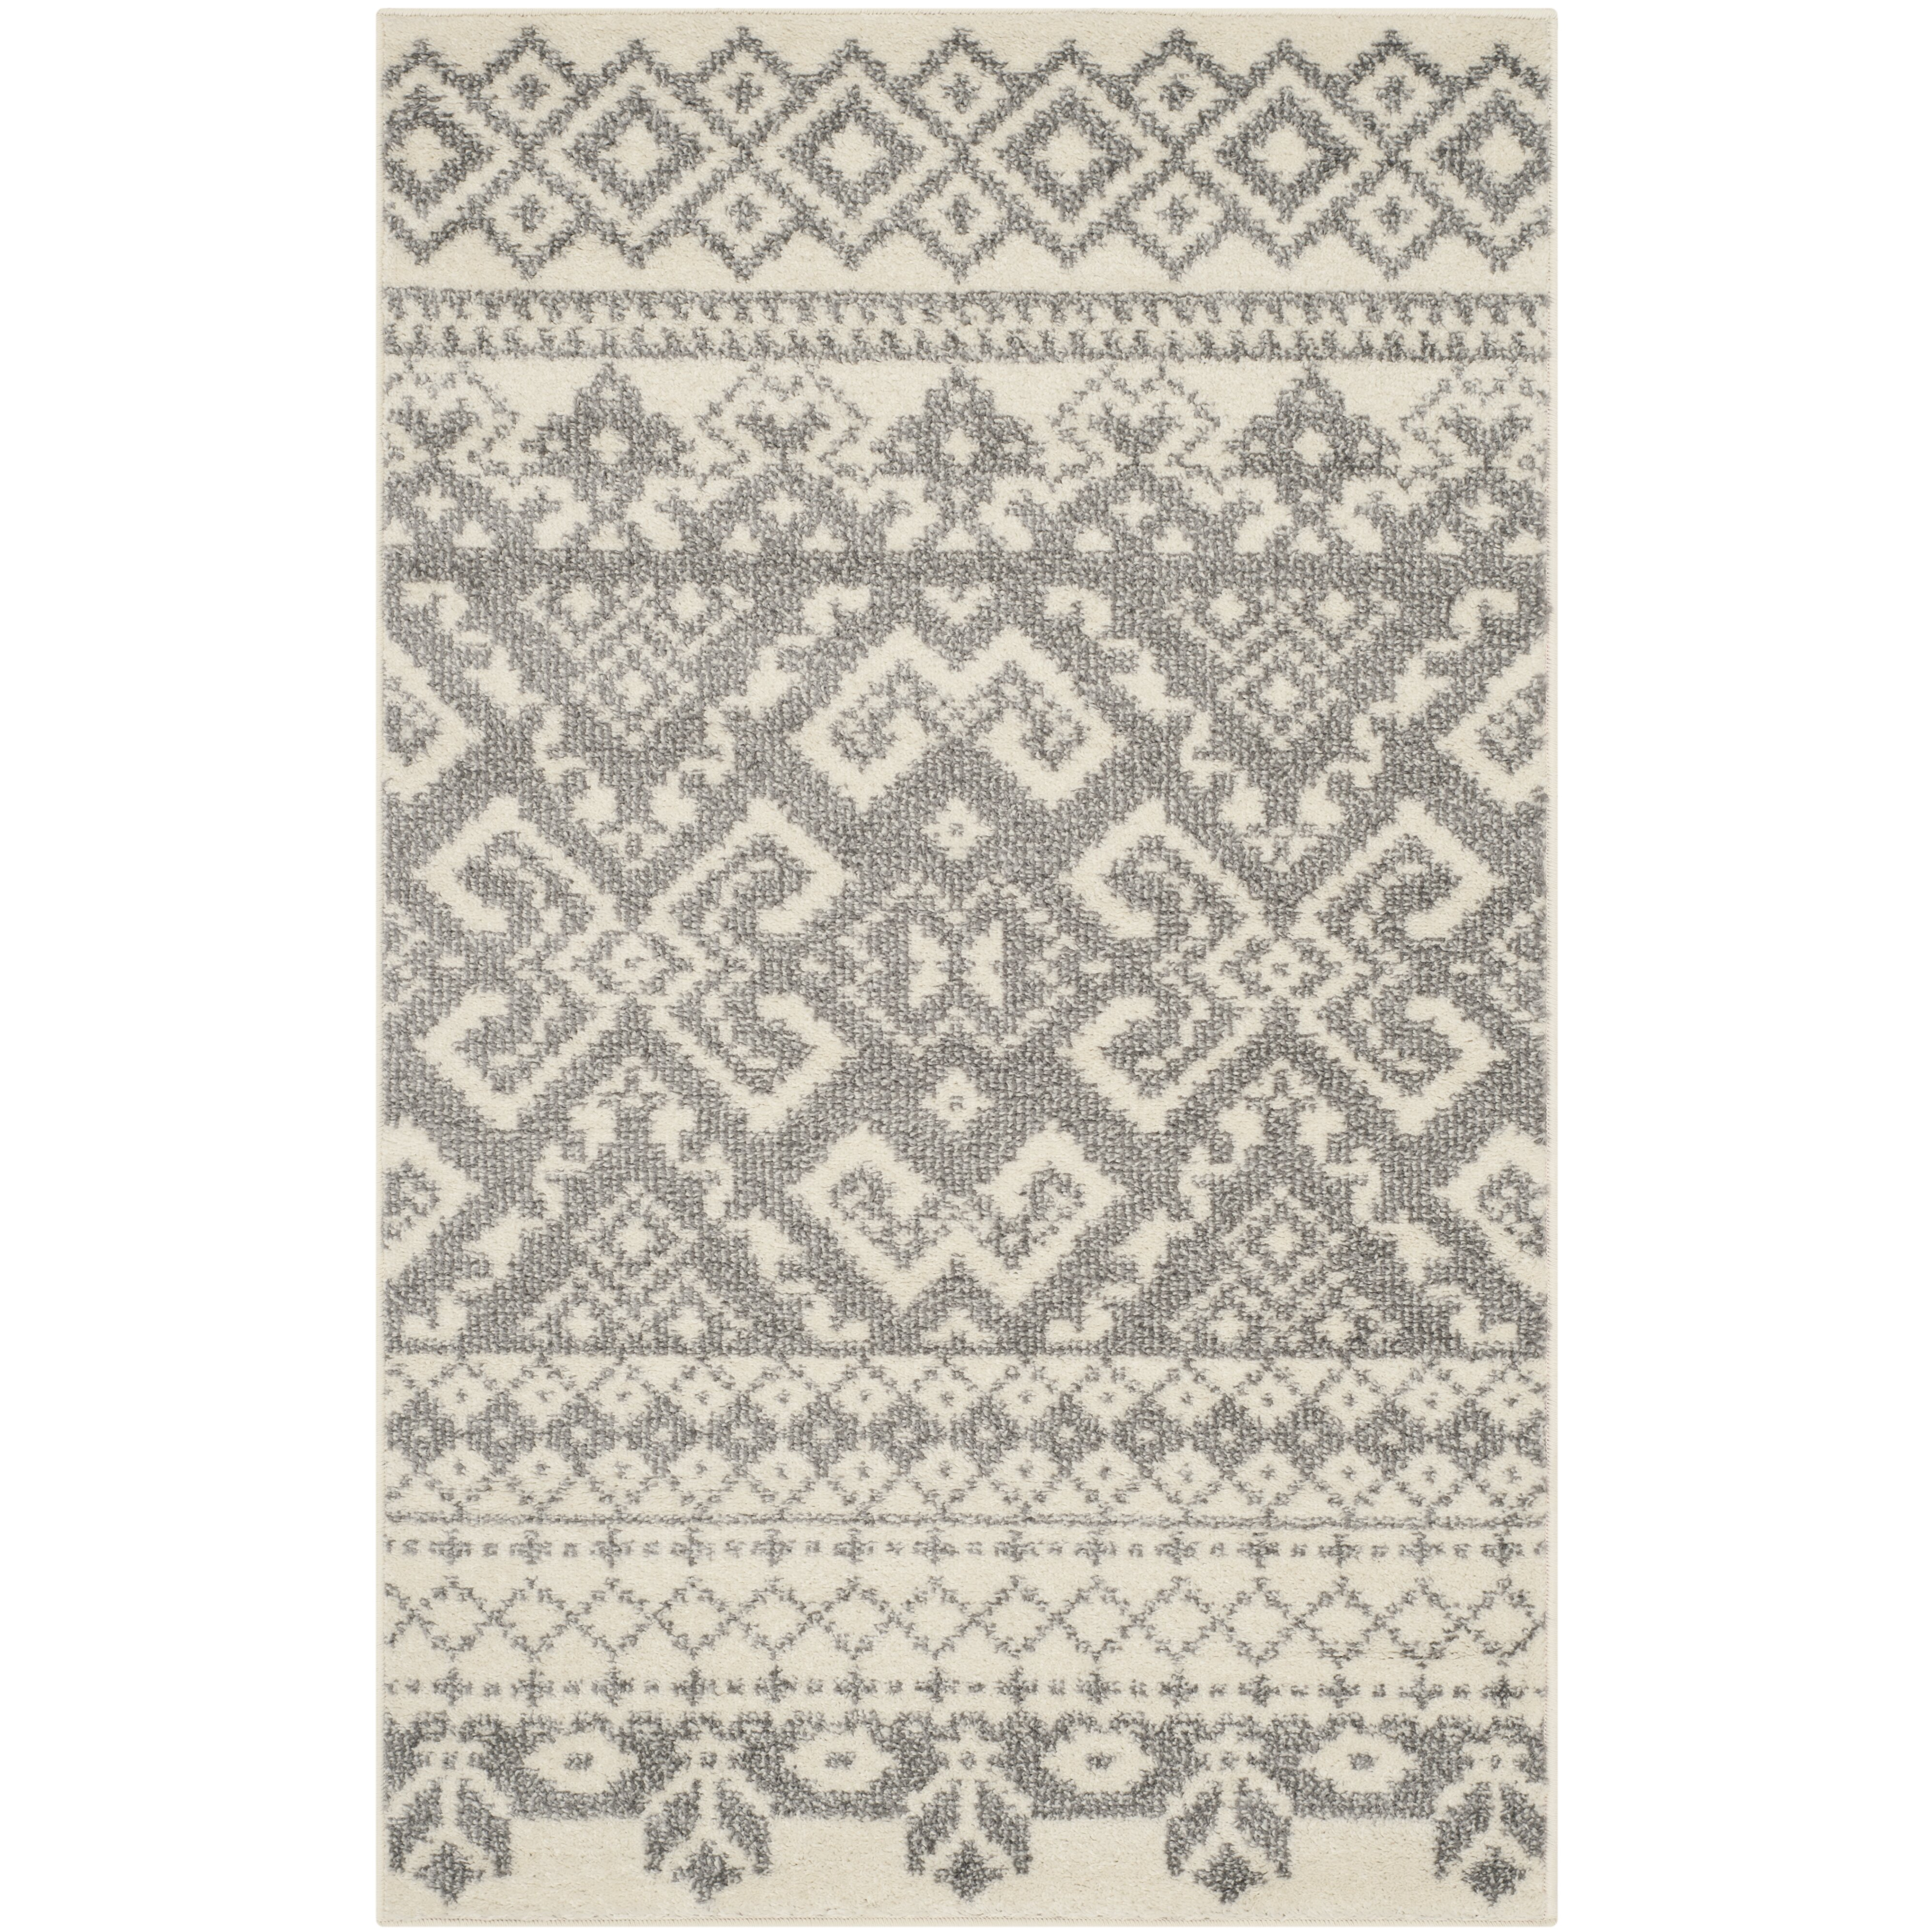 8 215 10 Turquoise Area Rug 8x10 Designs Green